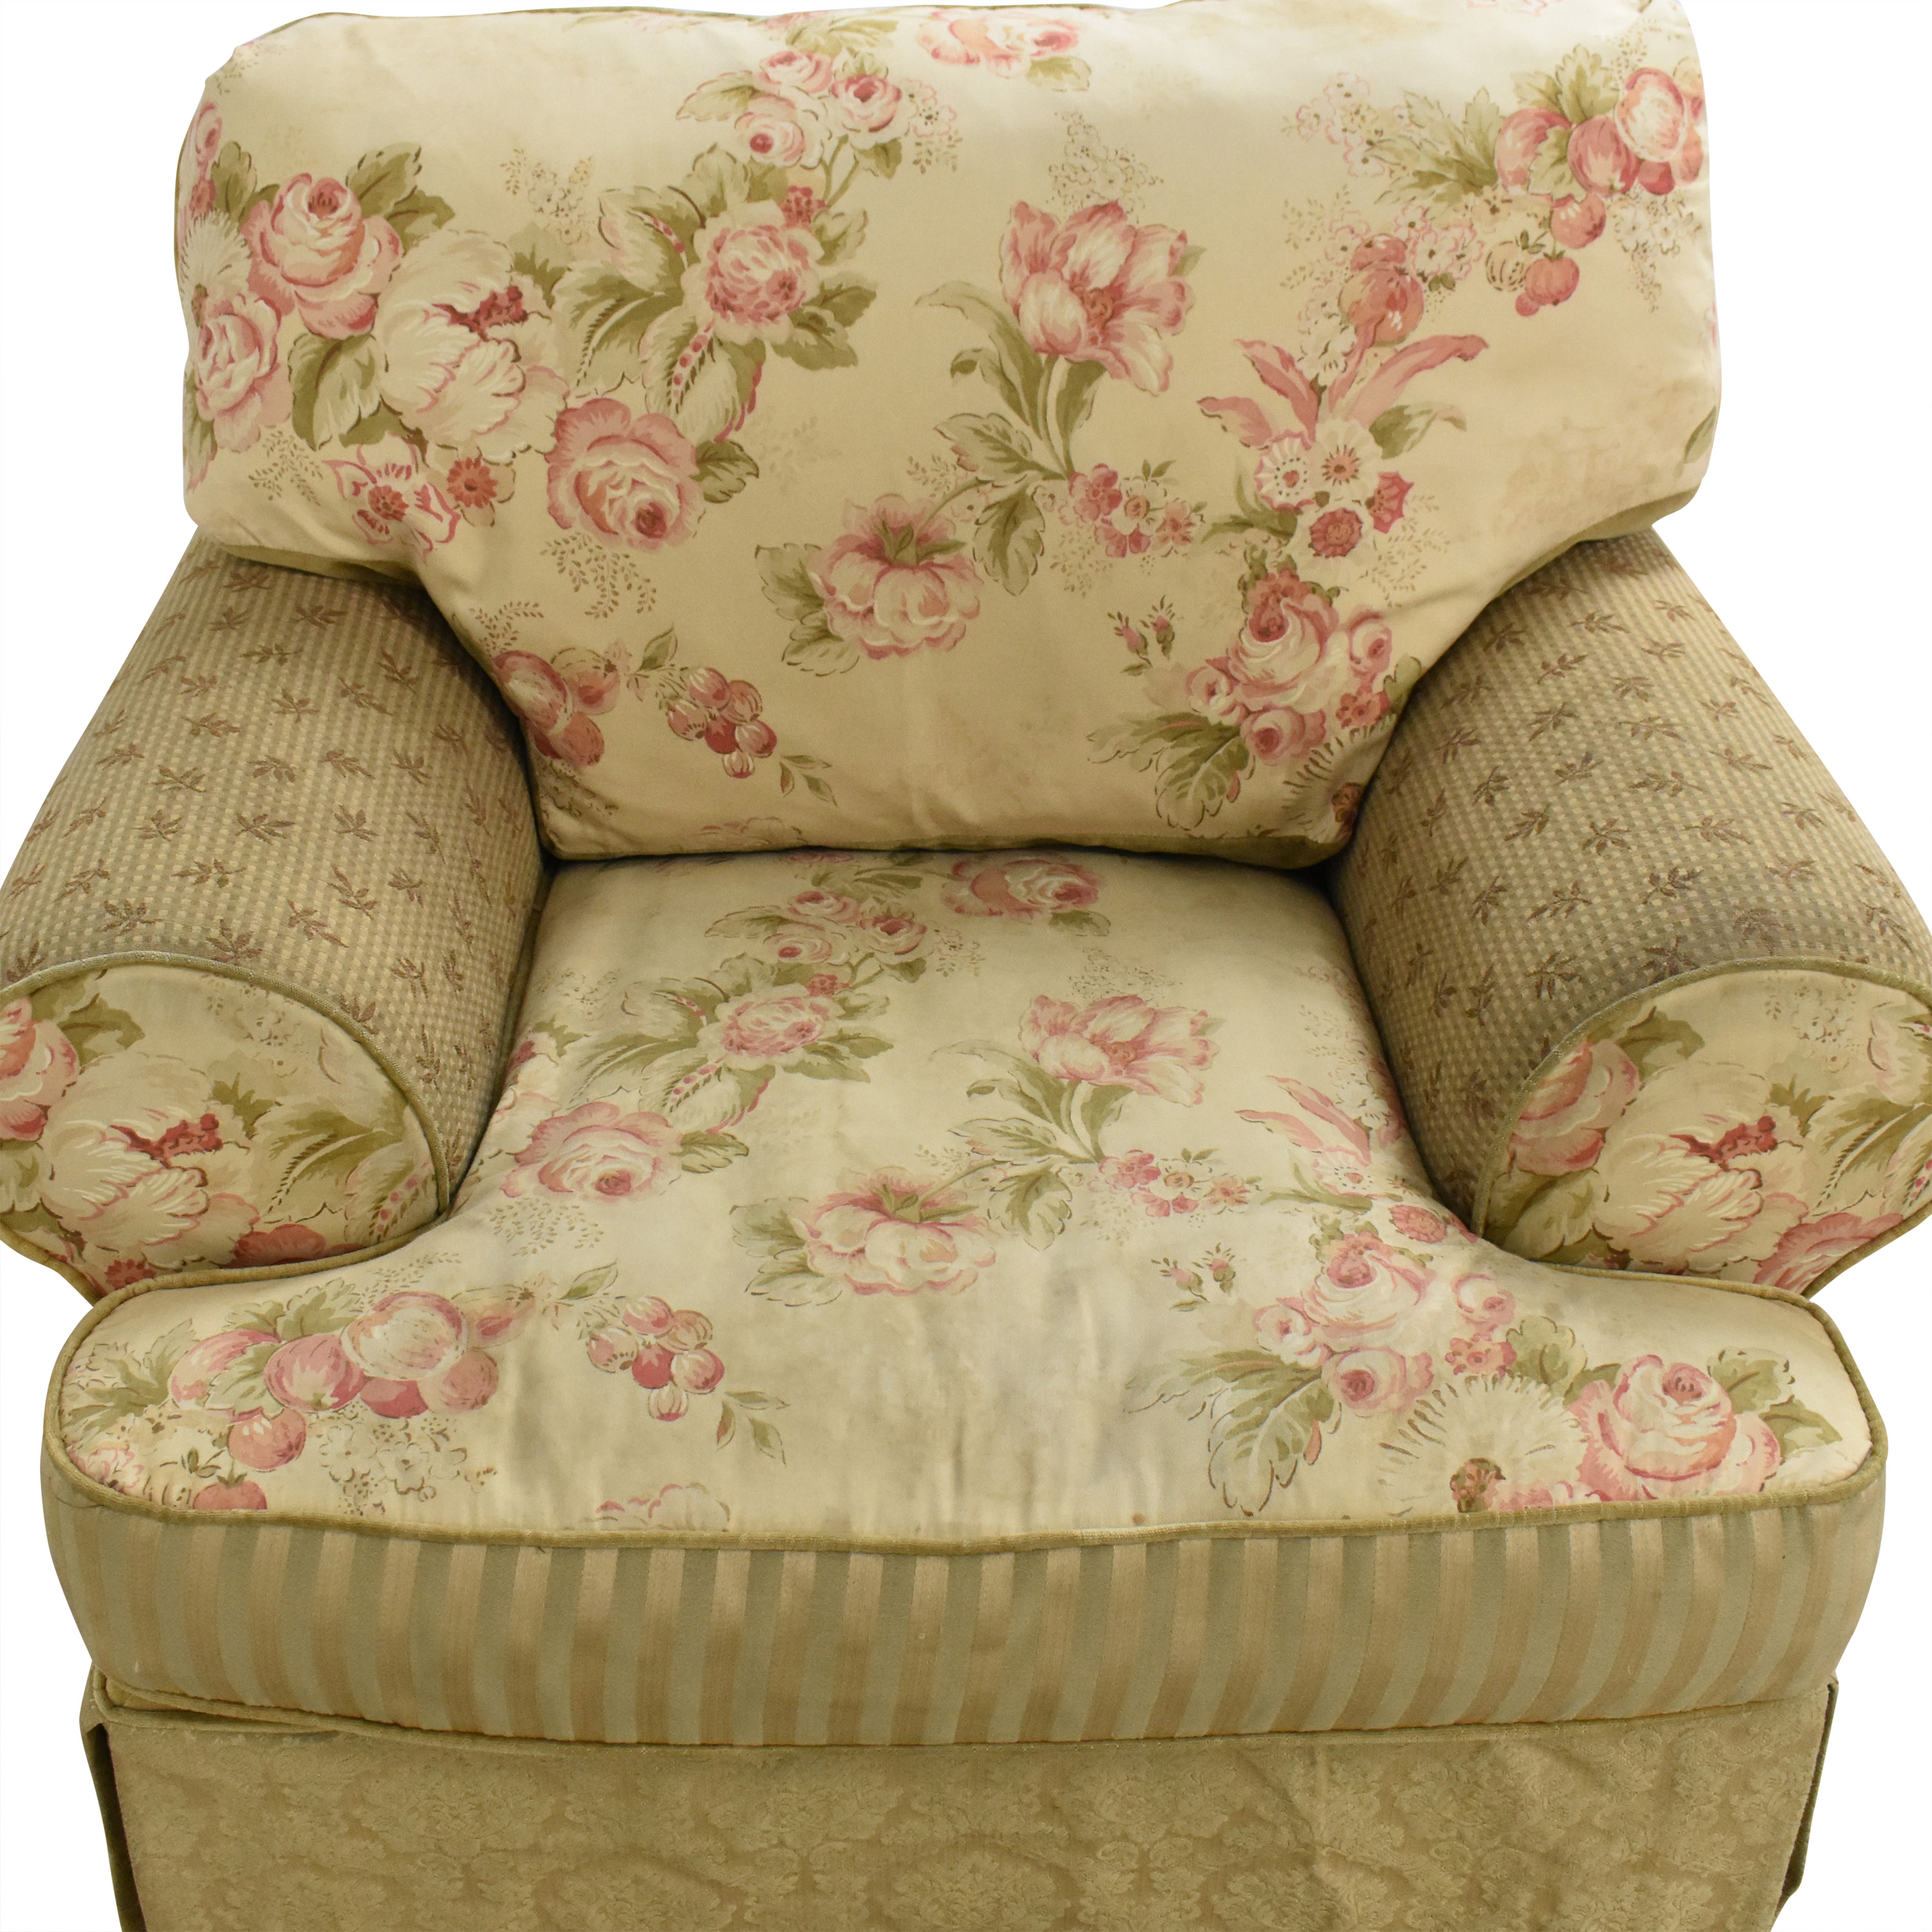 Alexvale Alexvale Floral Accent Chair for sale